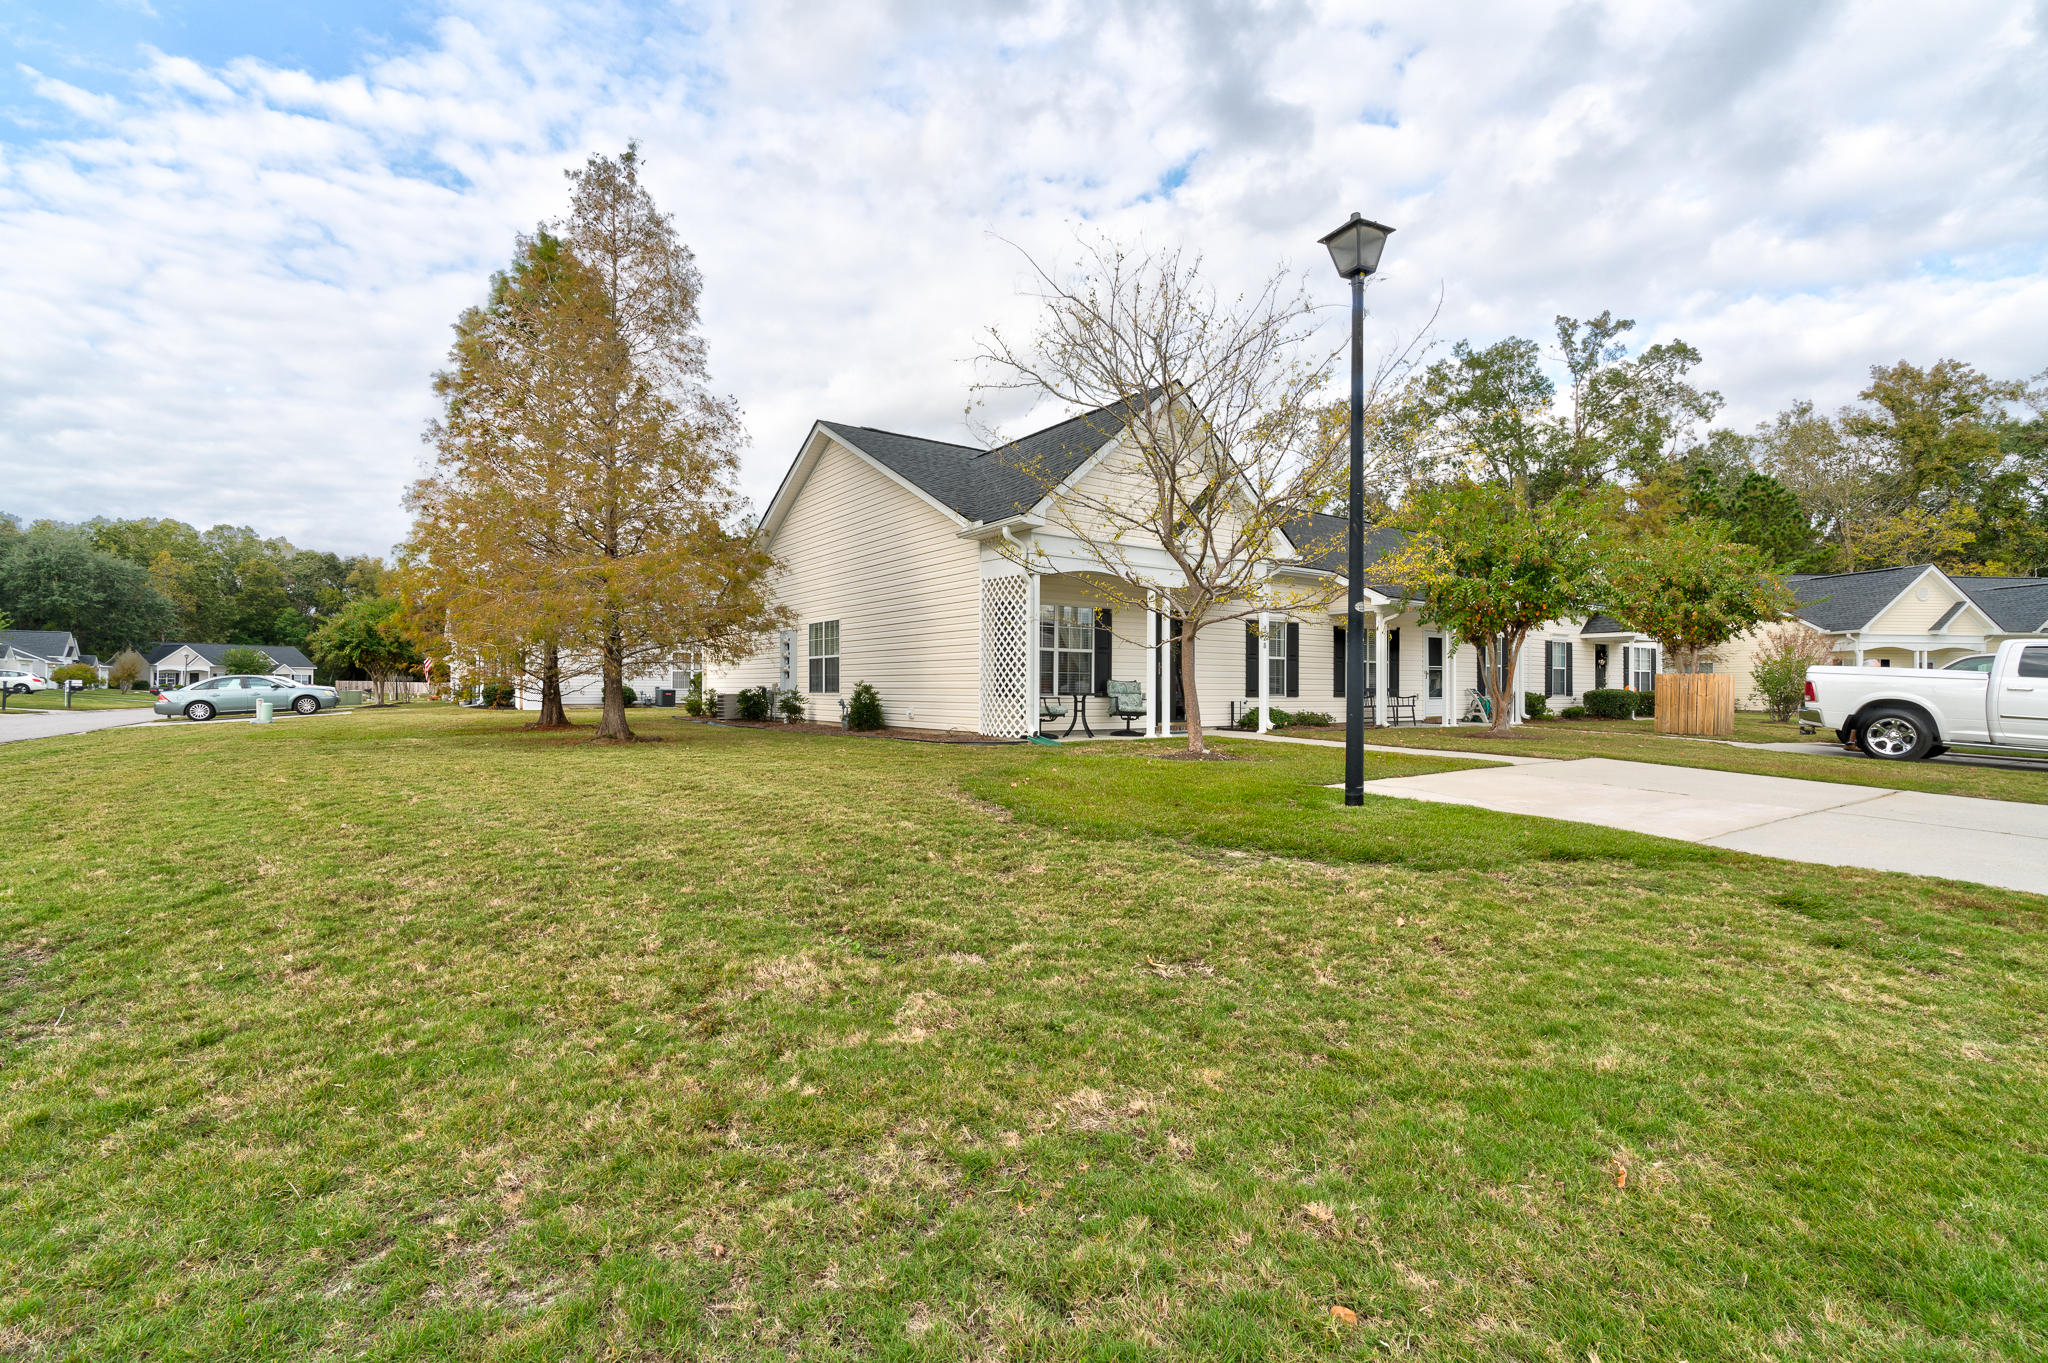 Oakbrook Commons Homes For Sale - 228 Hardee, Summerville, SC - 9